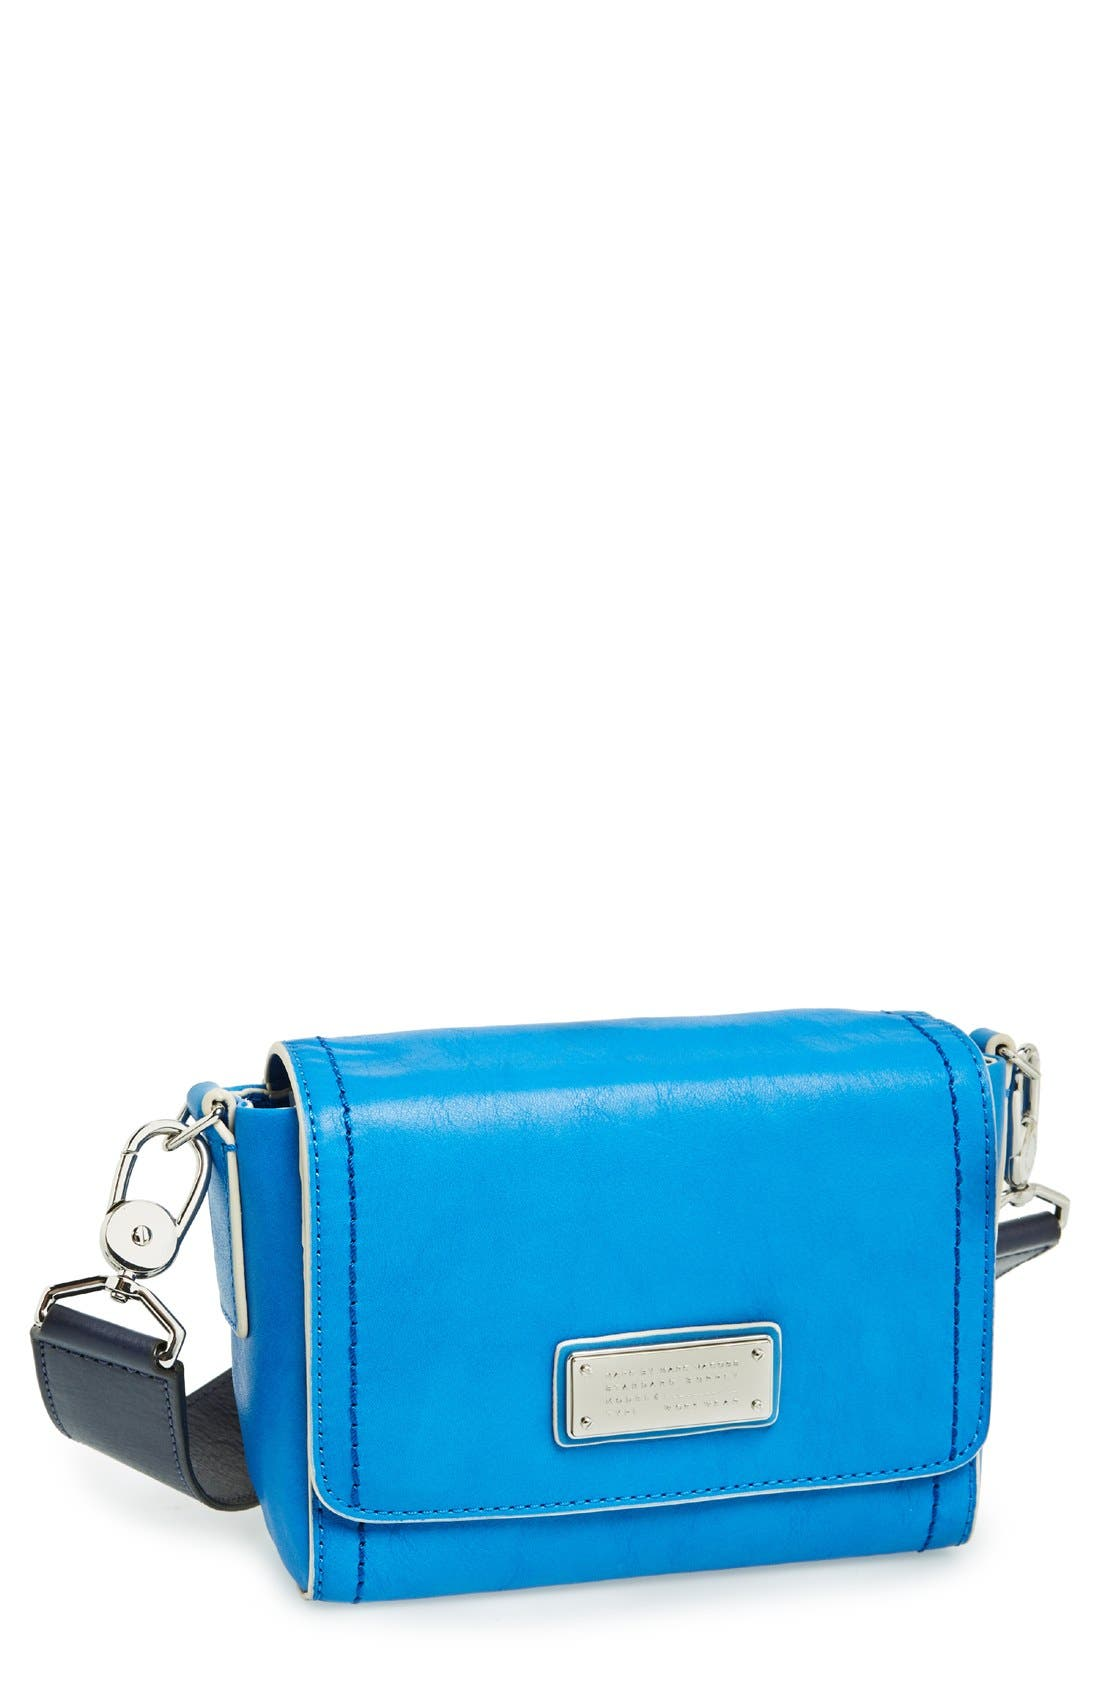 Main Image - MARC BY MARC JACOBS 'Mility Utility - Sadie X-Body' Italian Leather Crossbody Bag